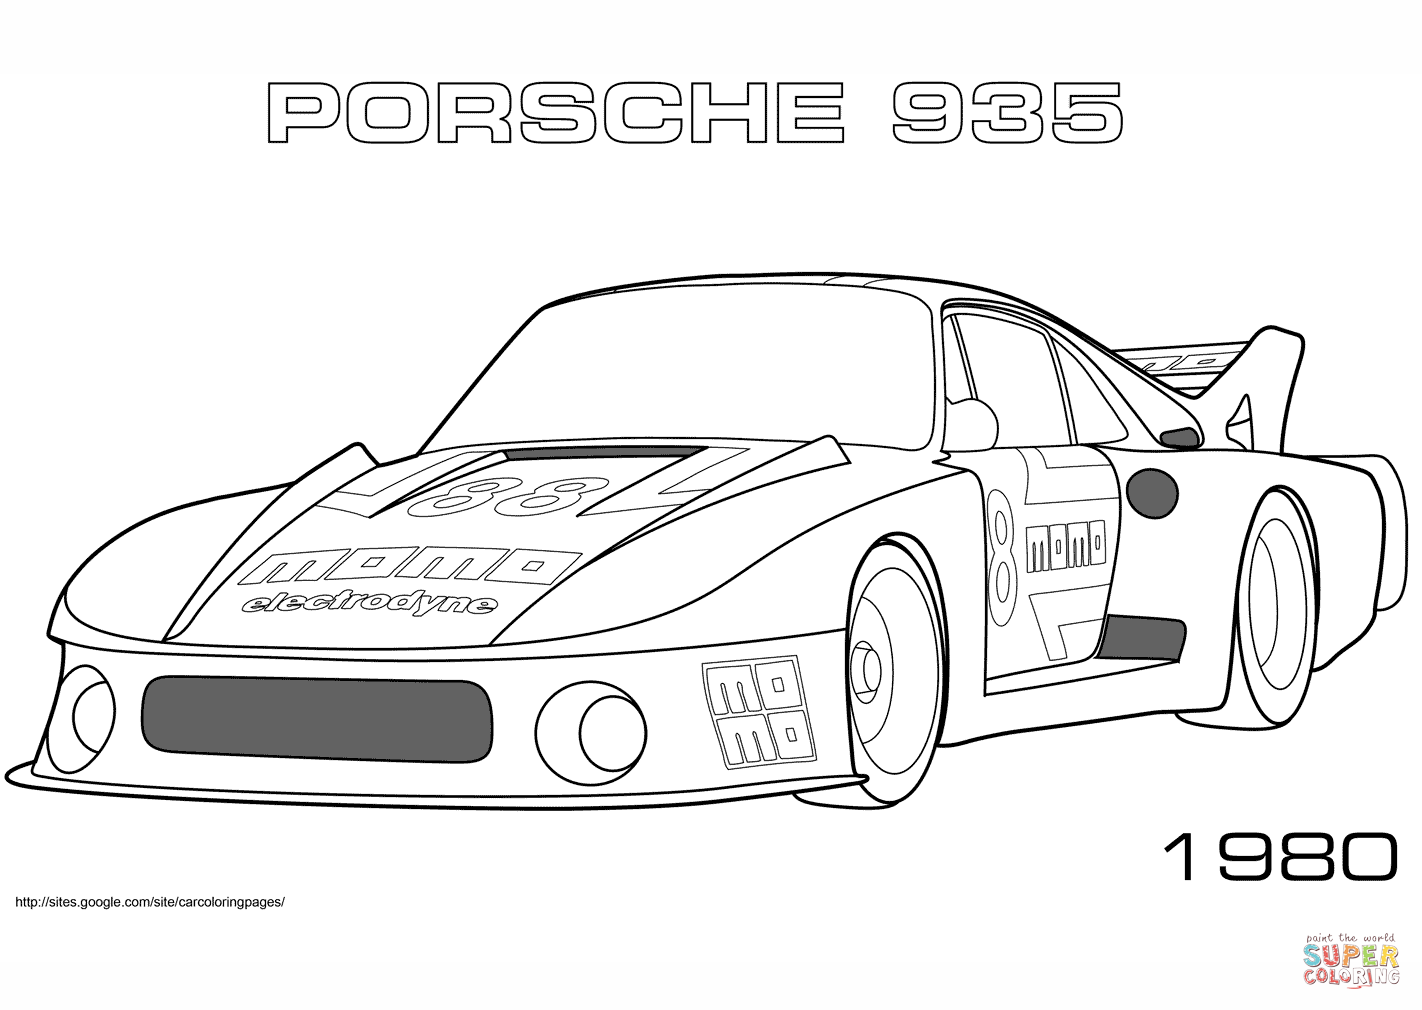 Fabuleux Coloring Pages Porsche - Coloring Home WR13